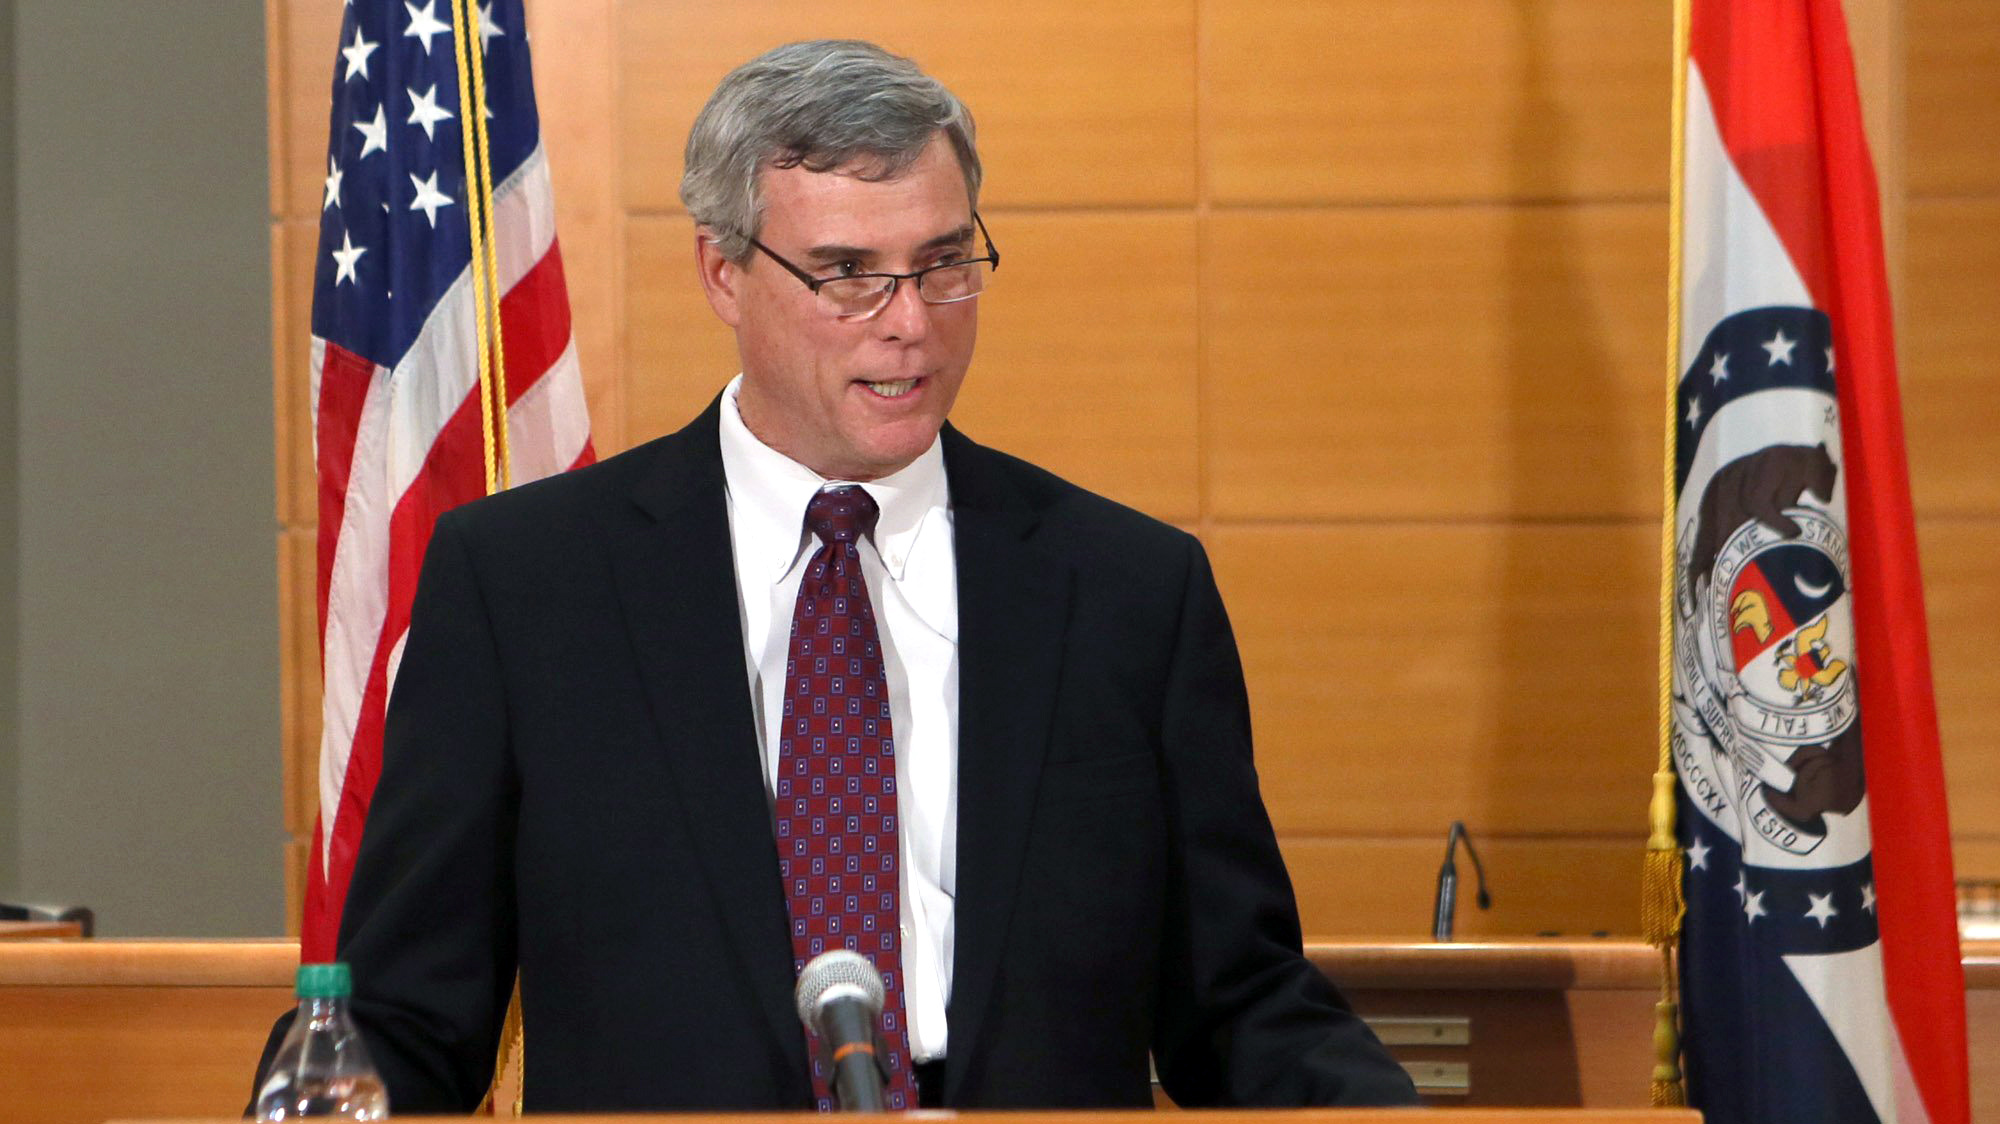 St. Louis County Prosecutor Robert McCulloch announces the grand jury's decision not to indict Ferguson police officer Darren Wilson in the Aug. 9 shooting of Michael Brown, an unarmed black 18-year old, on Monday, Nov. 24, 2014, at the Buzz Westfall Justice Center in Clayton, Mo. (AP Photo/St. Louis Post-Dispatch, Cristina Fletes-Boutte, Pool)